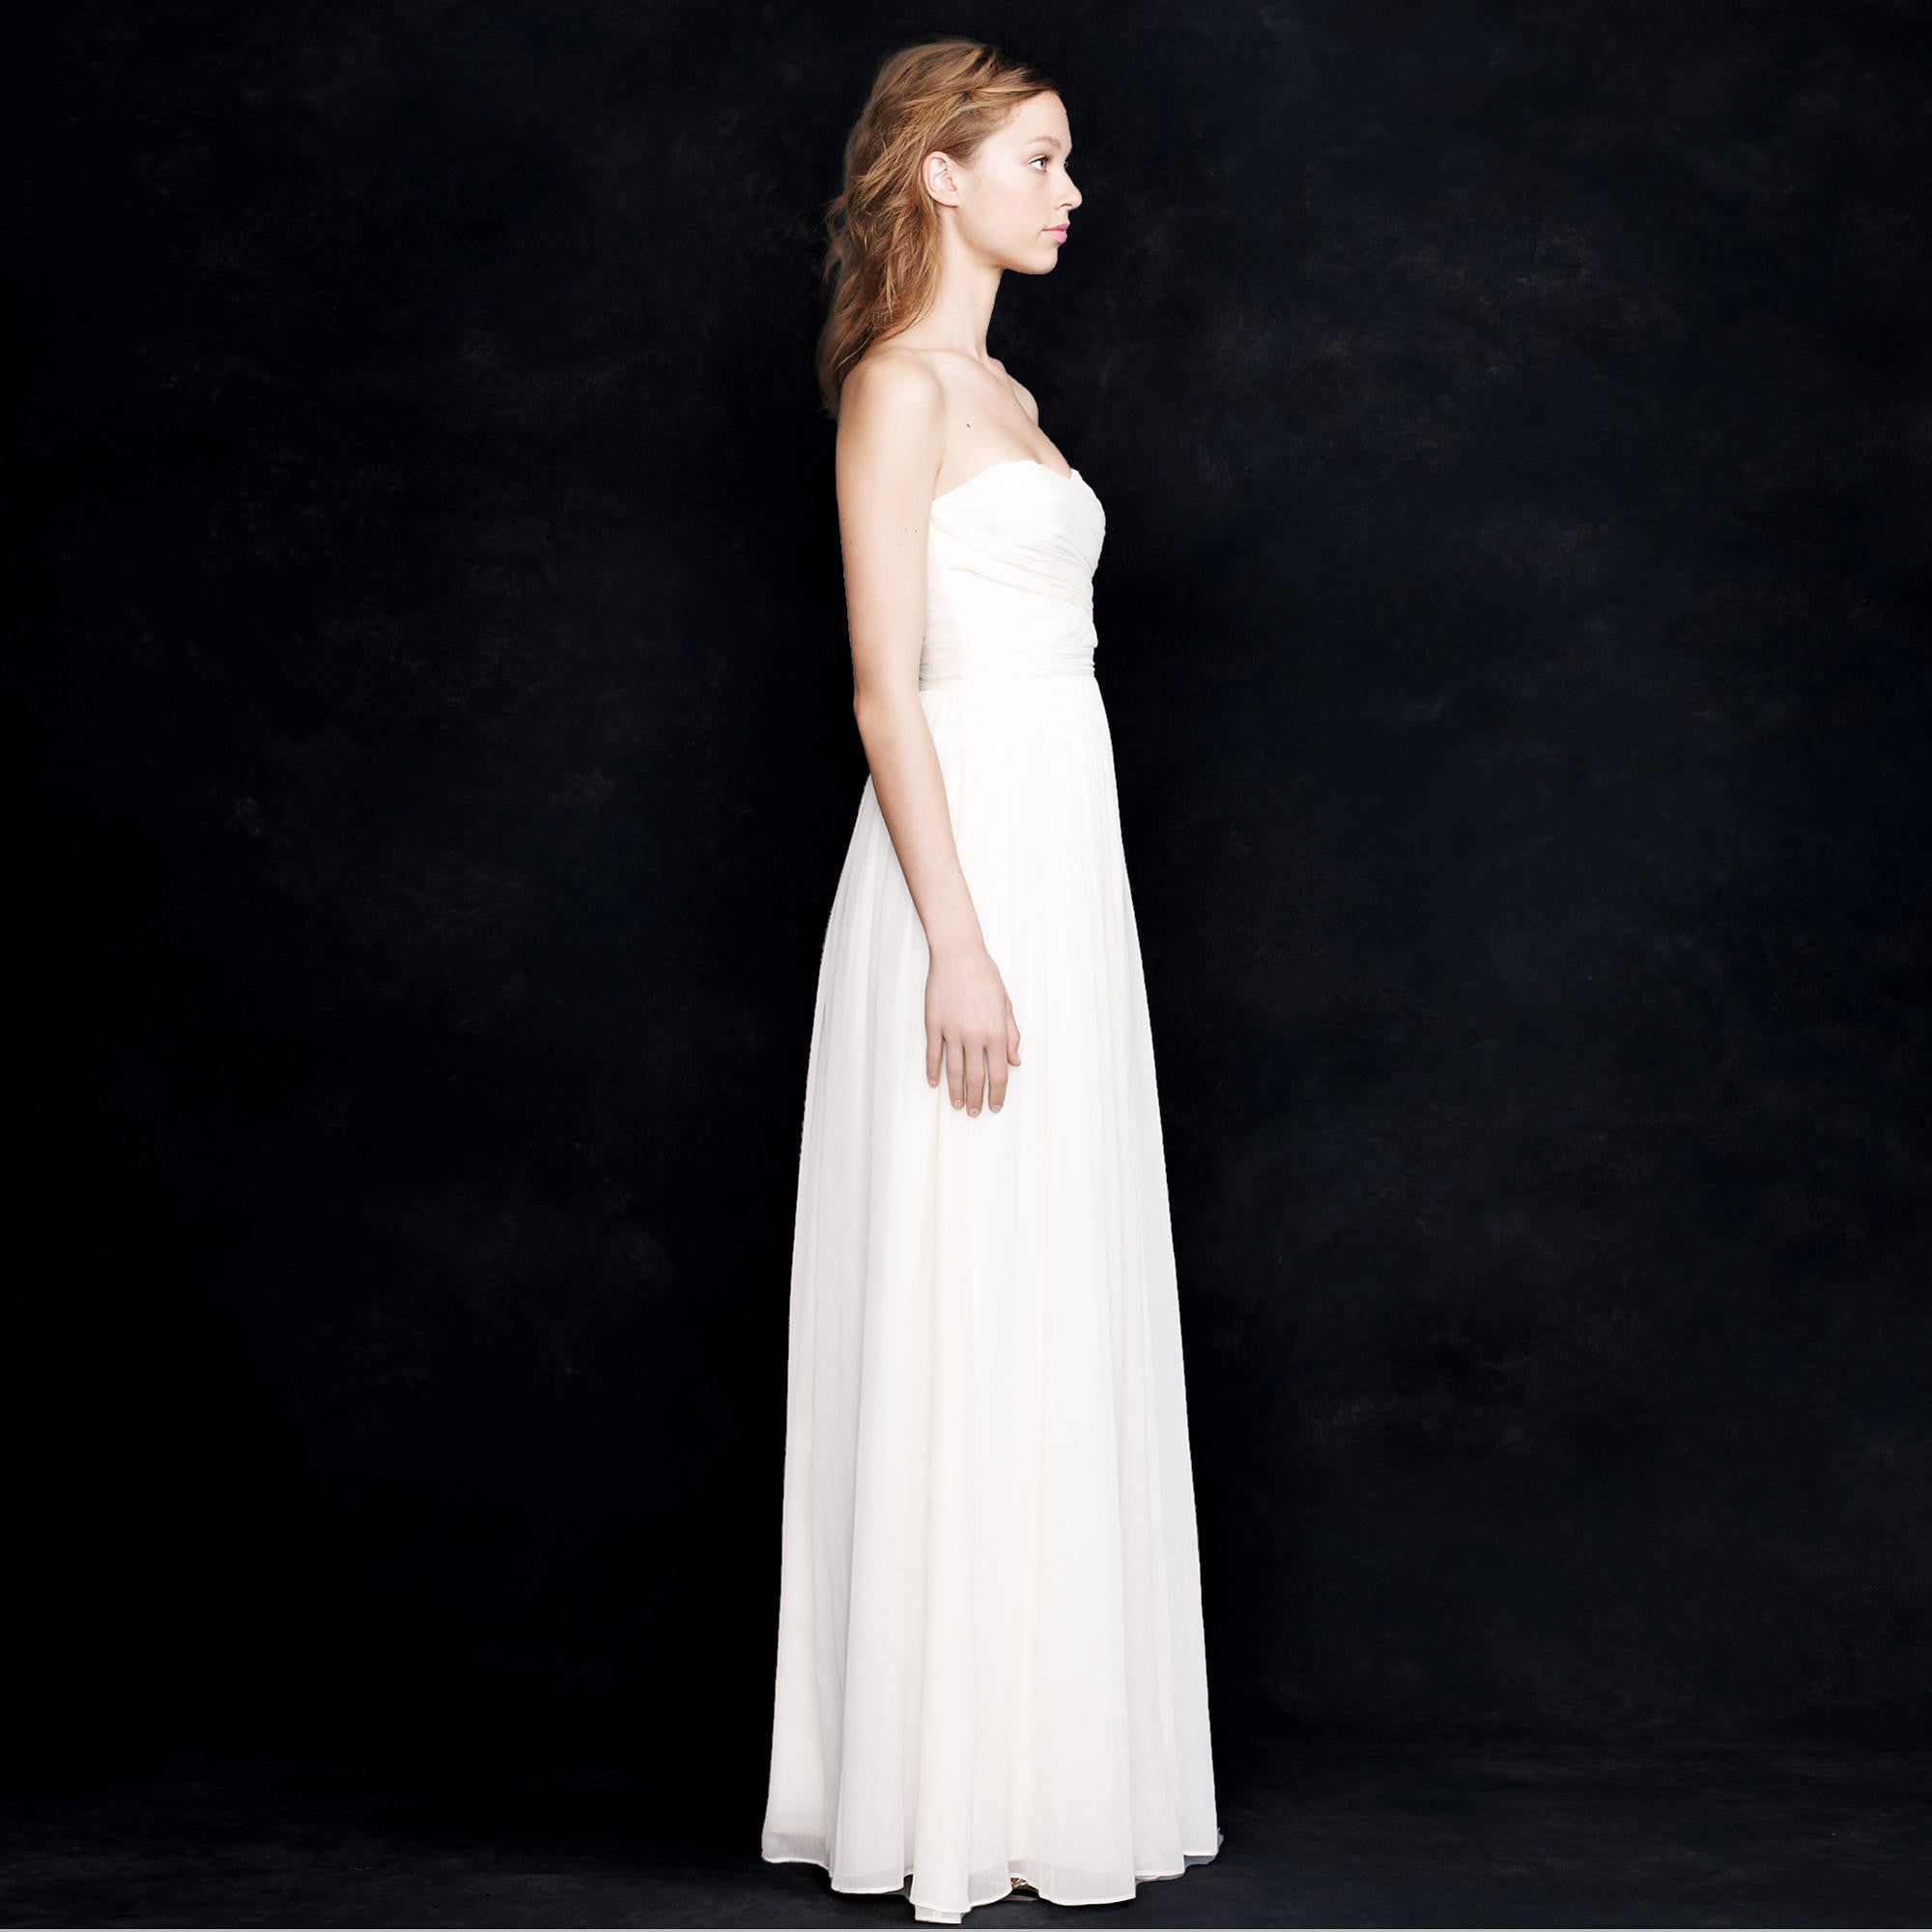 J. Crew Arabelle Wedding Gown - Adinas Bridal